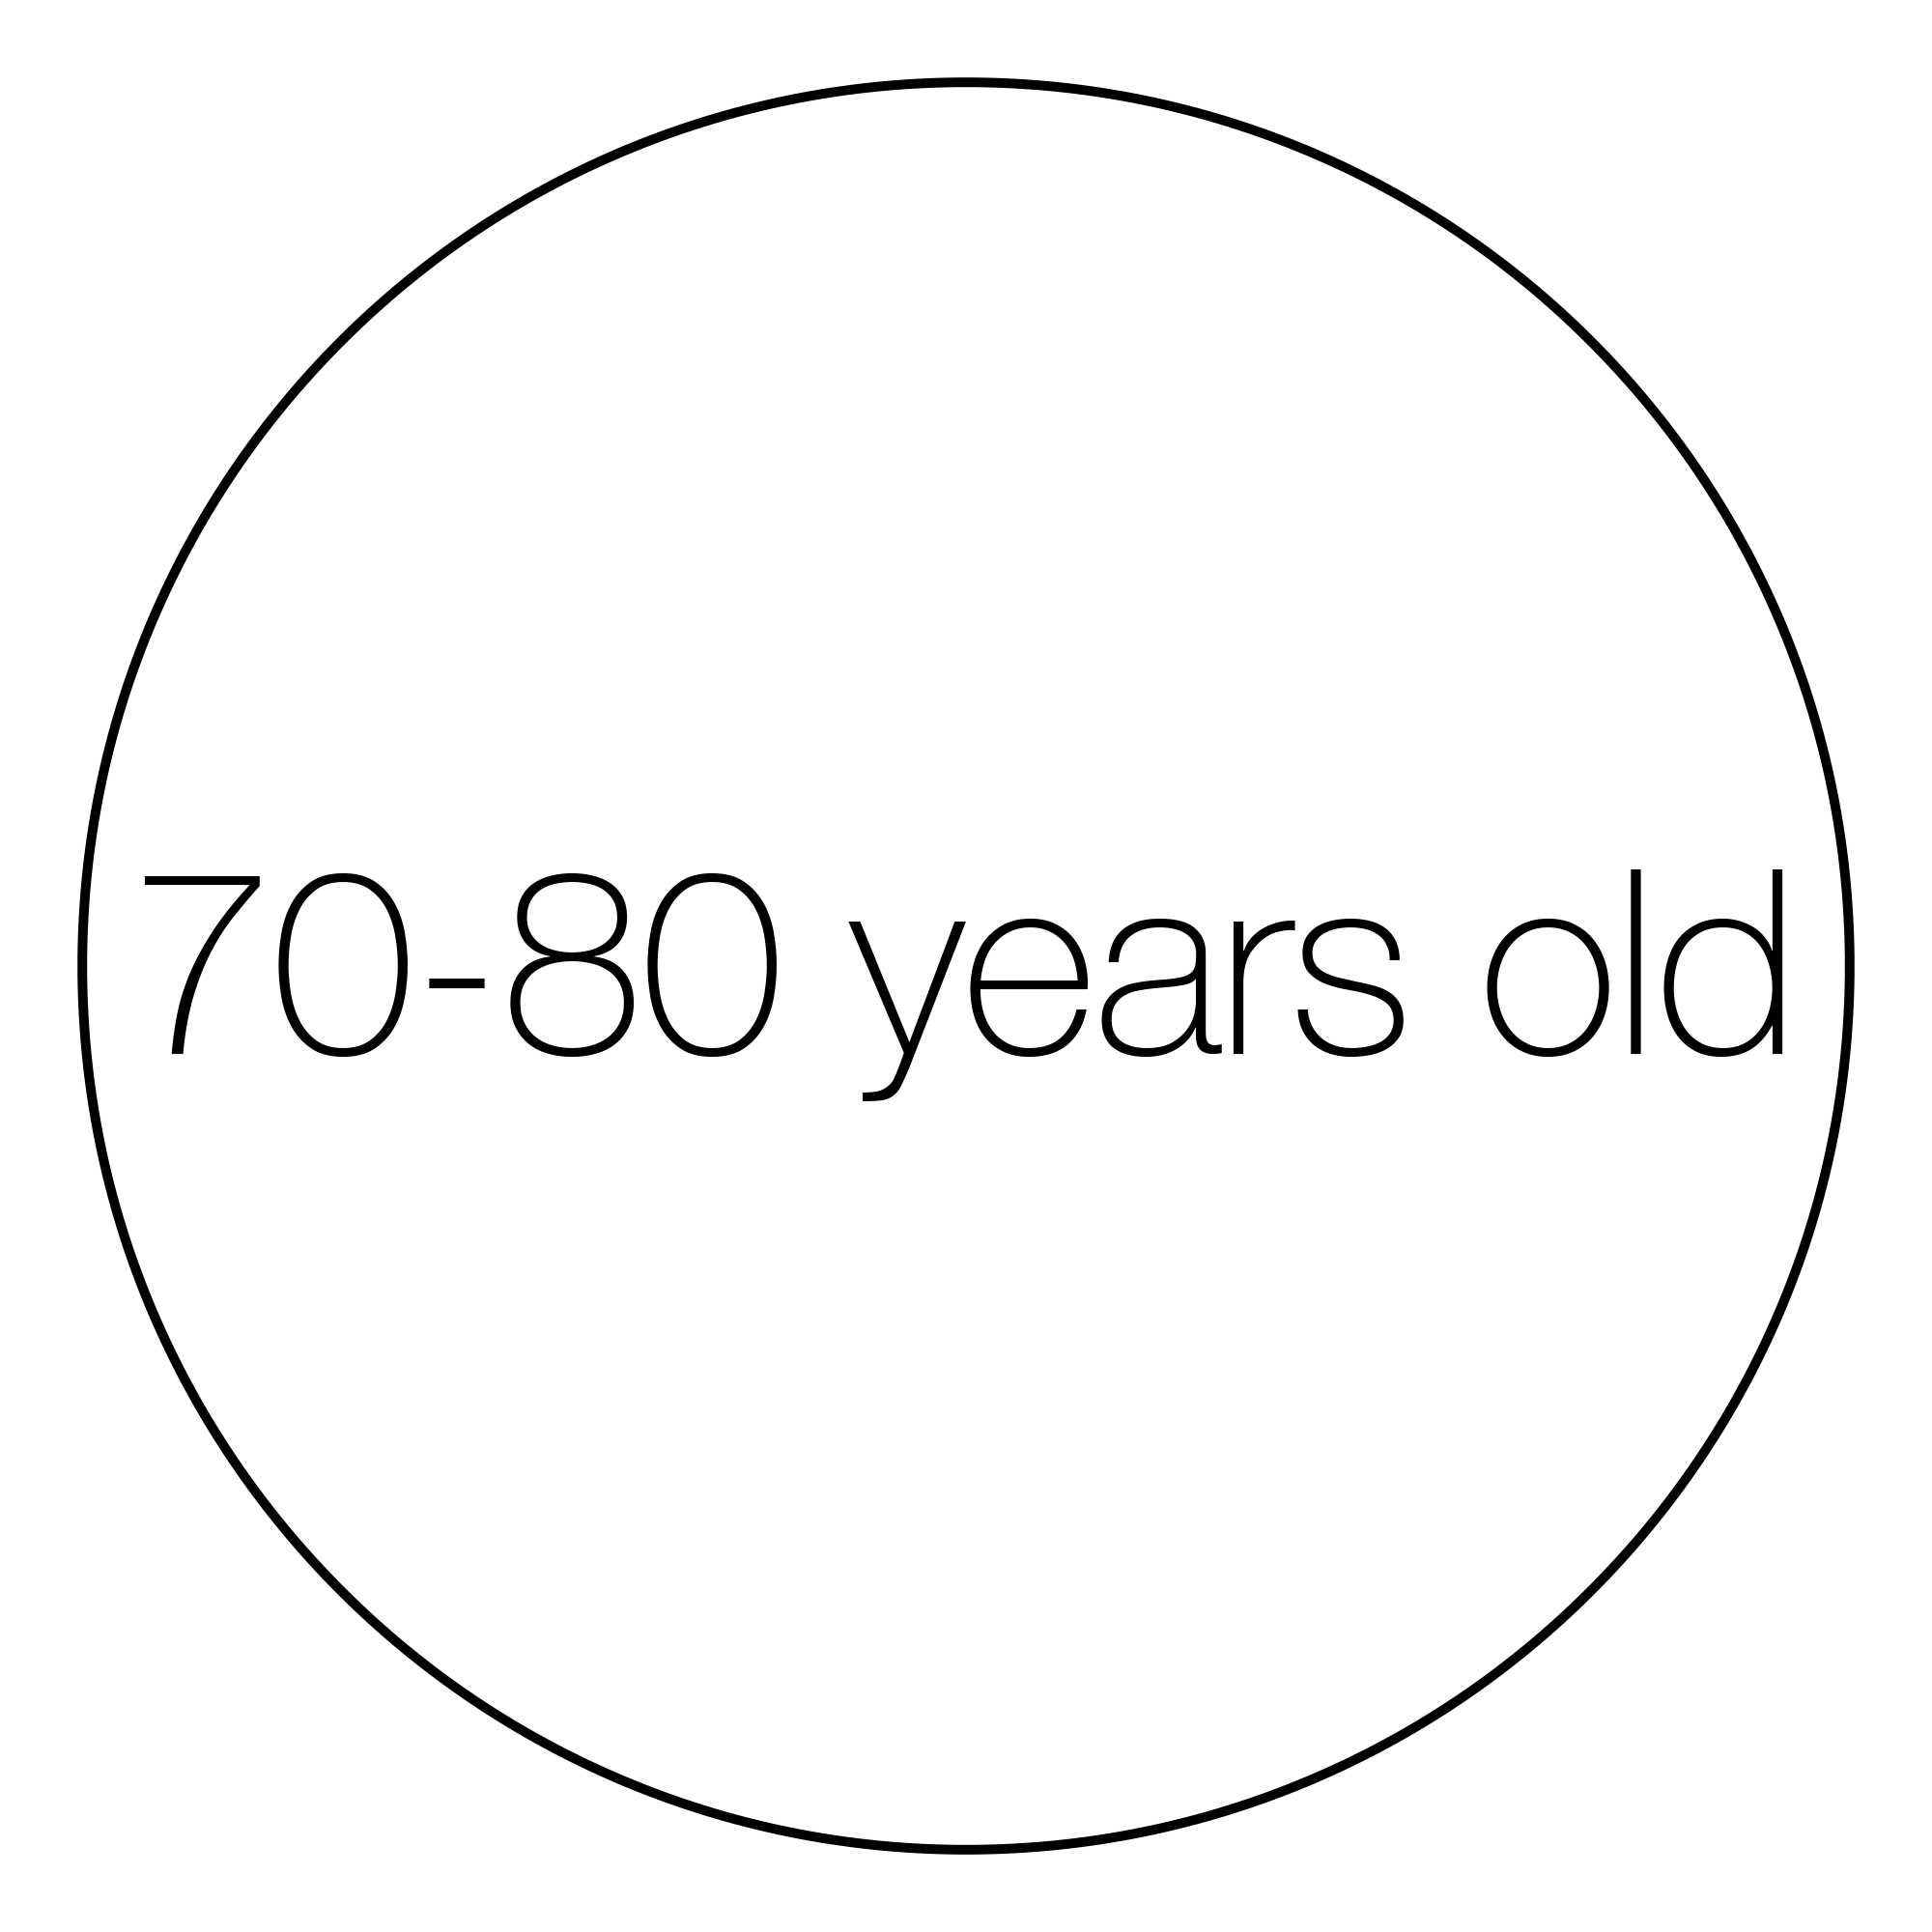 attribute-age-70-80-years-old